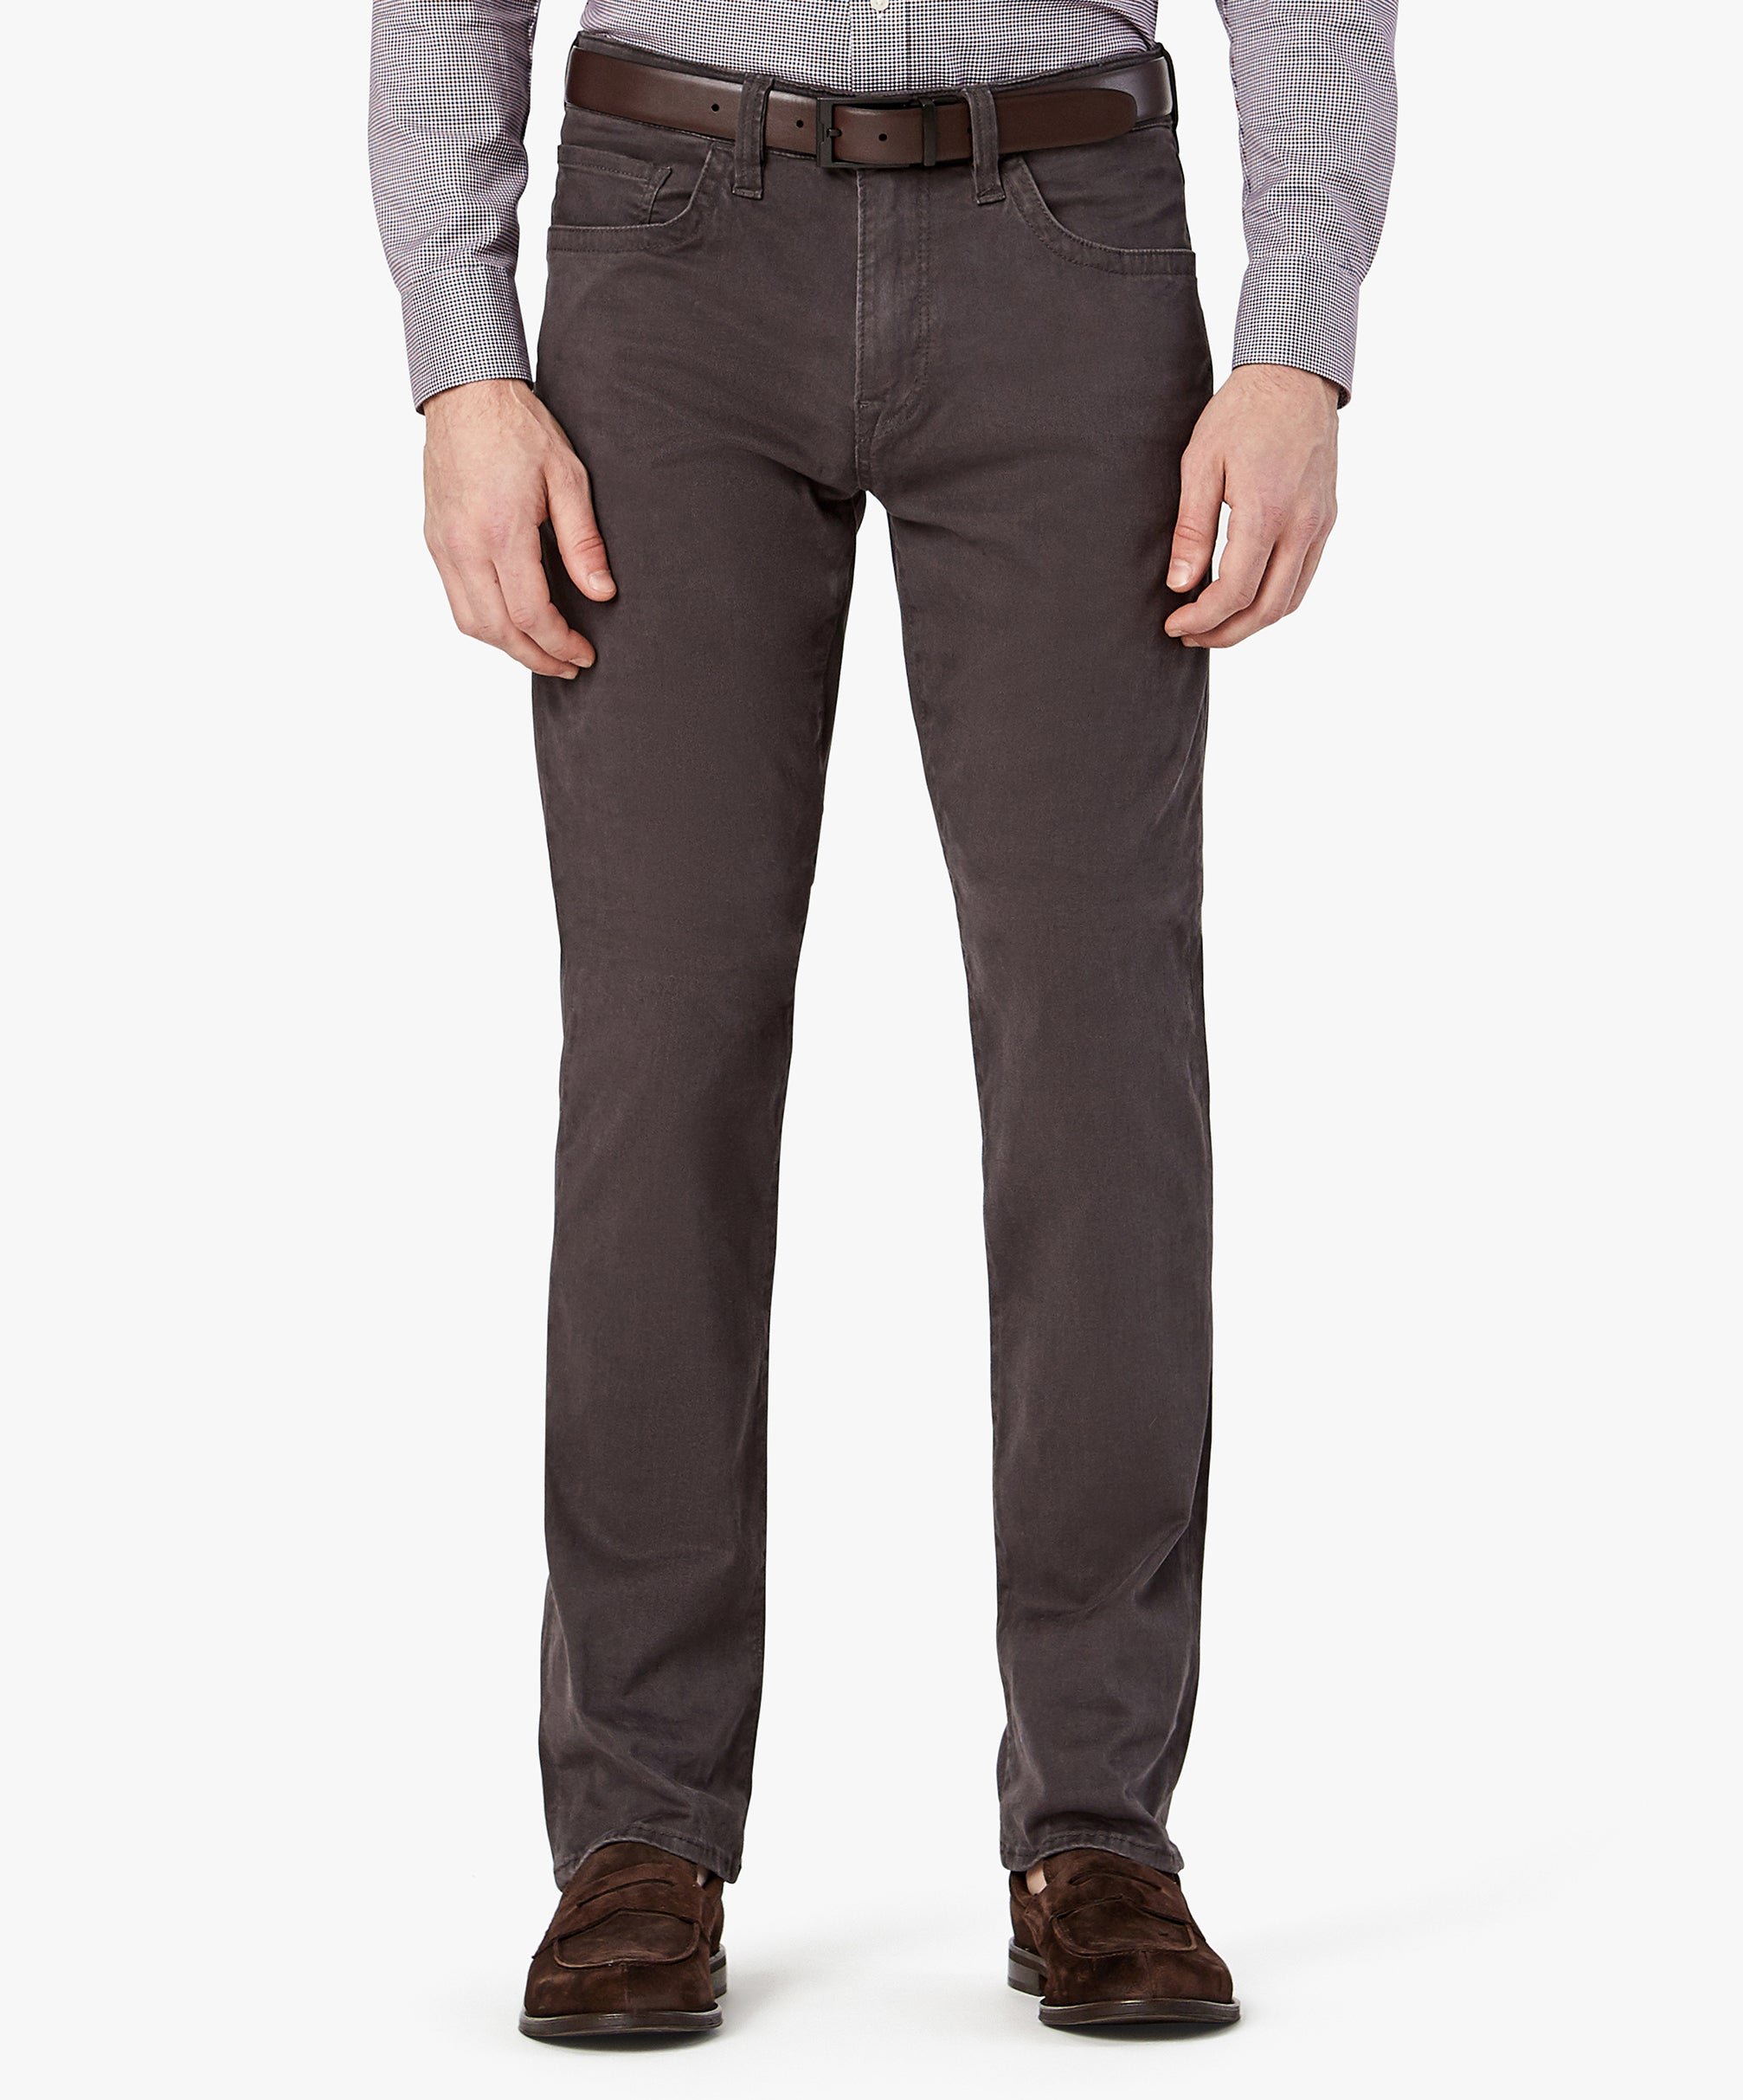 Courage Anthracite Twill Leisure Pant